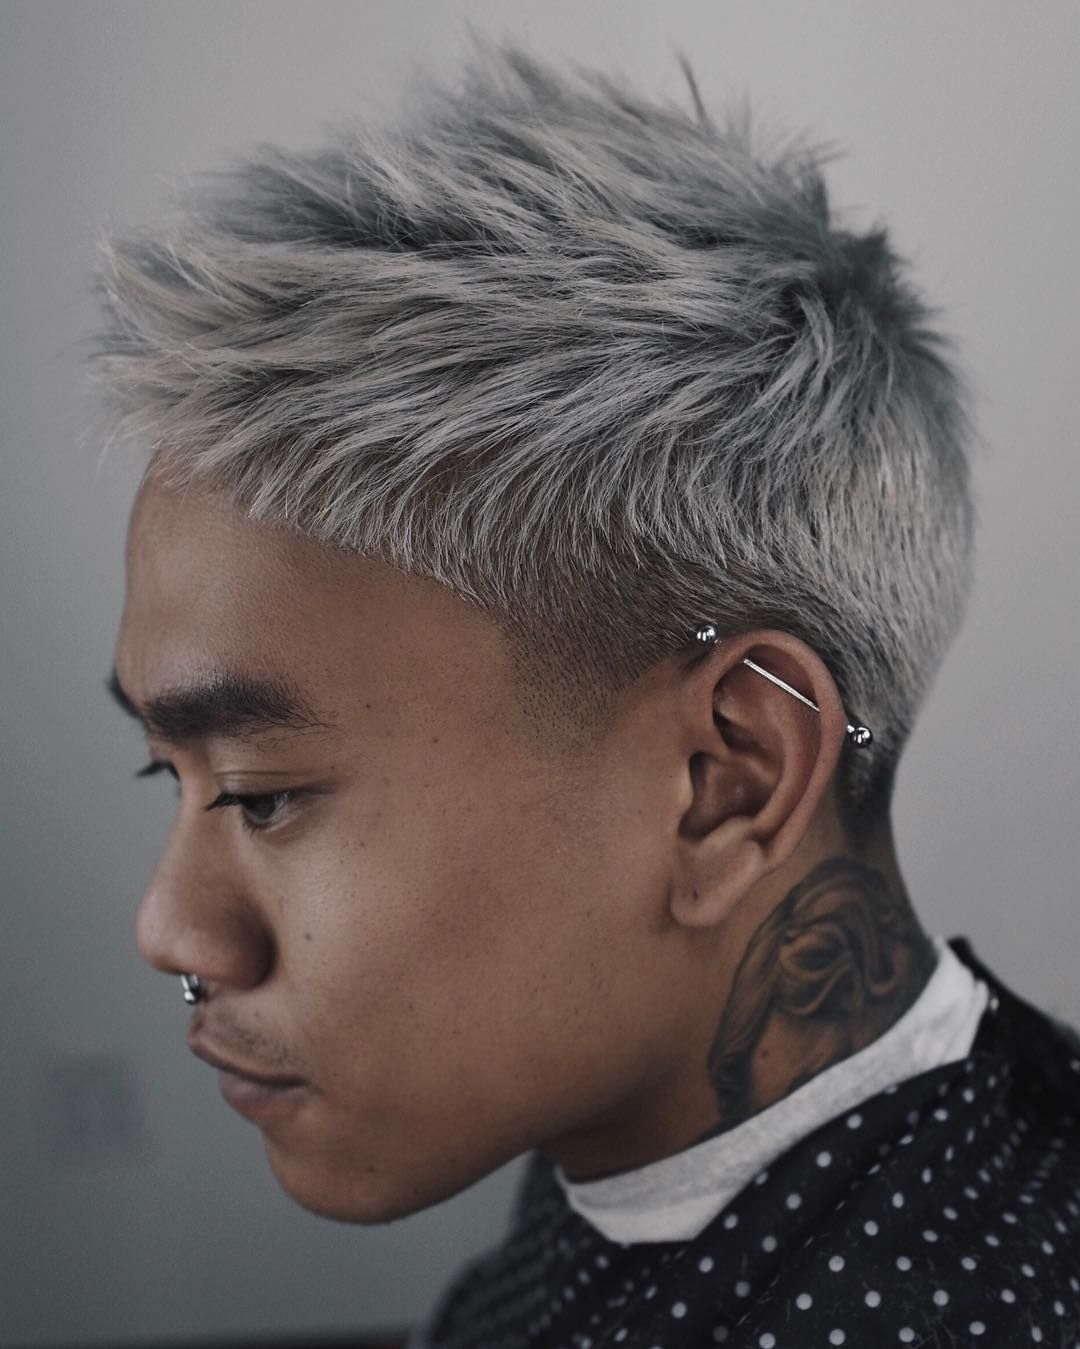 29 Best Hairstyles For Asian Men 2020 Styles Men Hair Color Cool Hairstyles Asian Hair